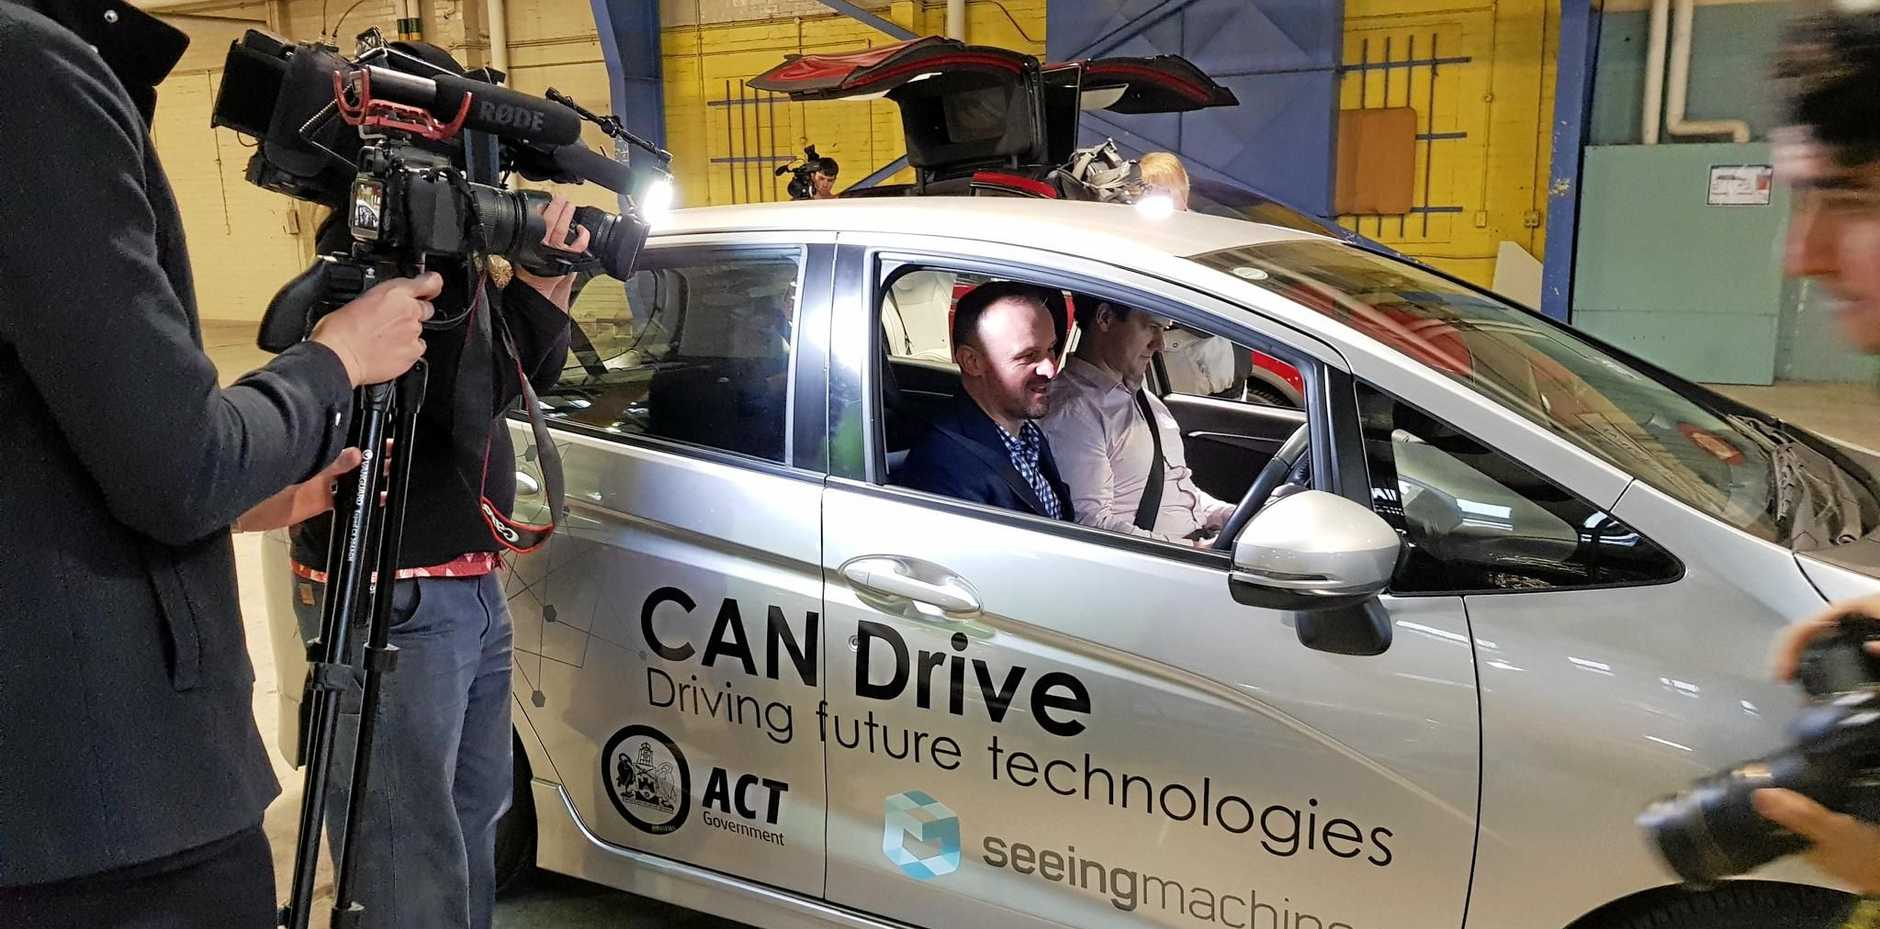 CANDRIVE: The Seeing machines technology in action.